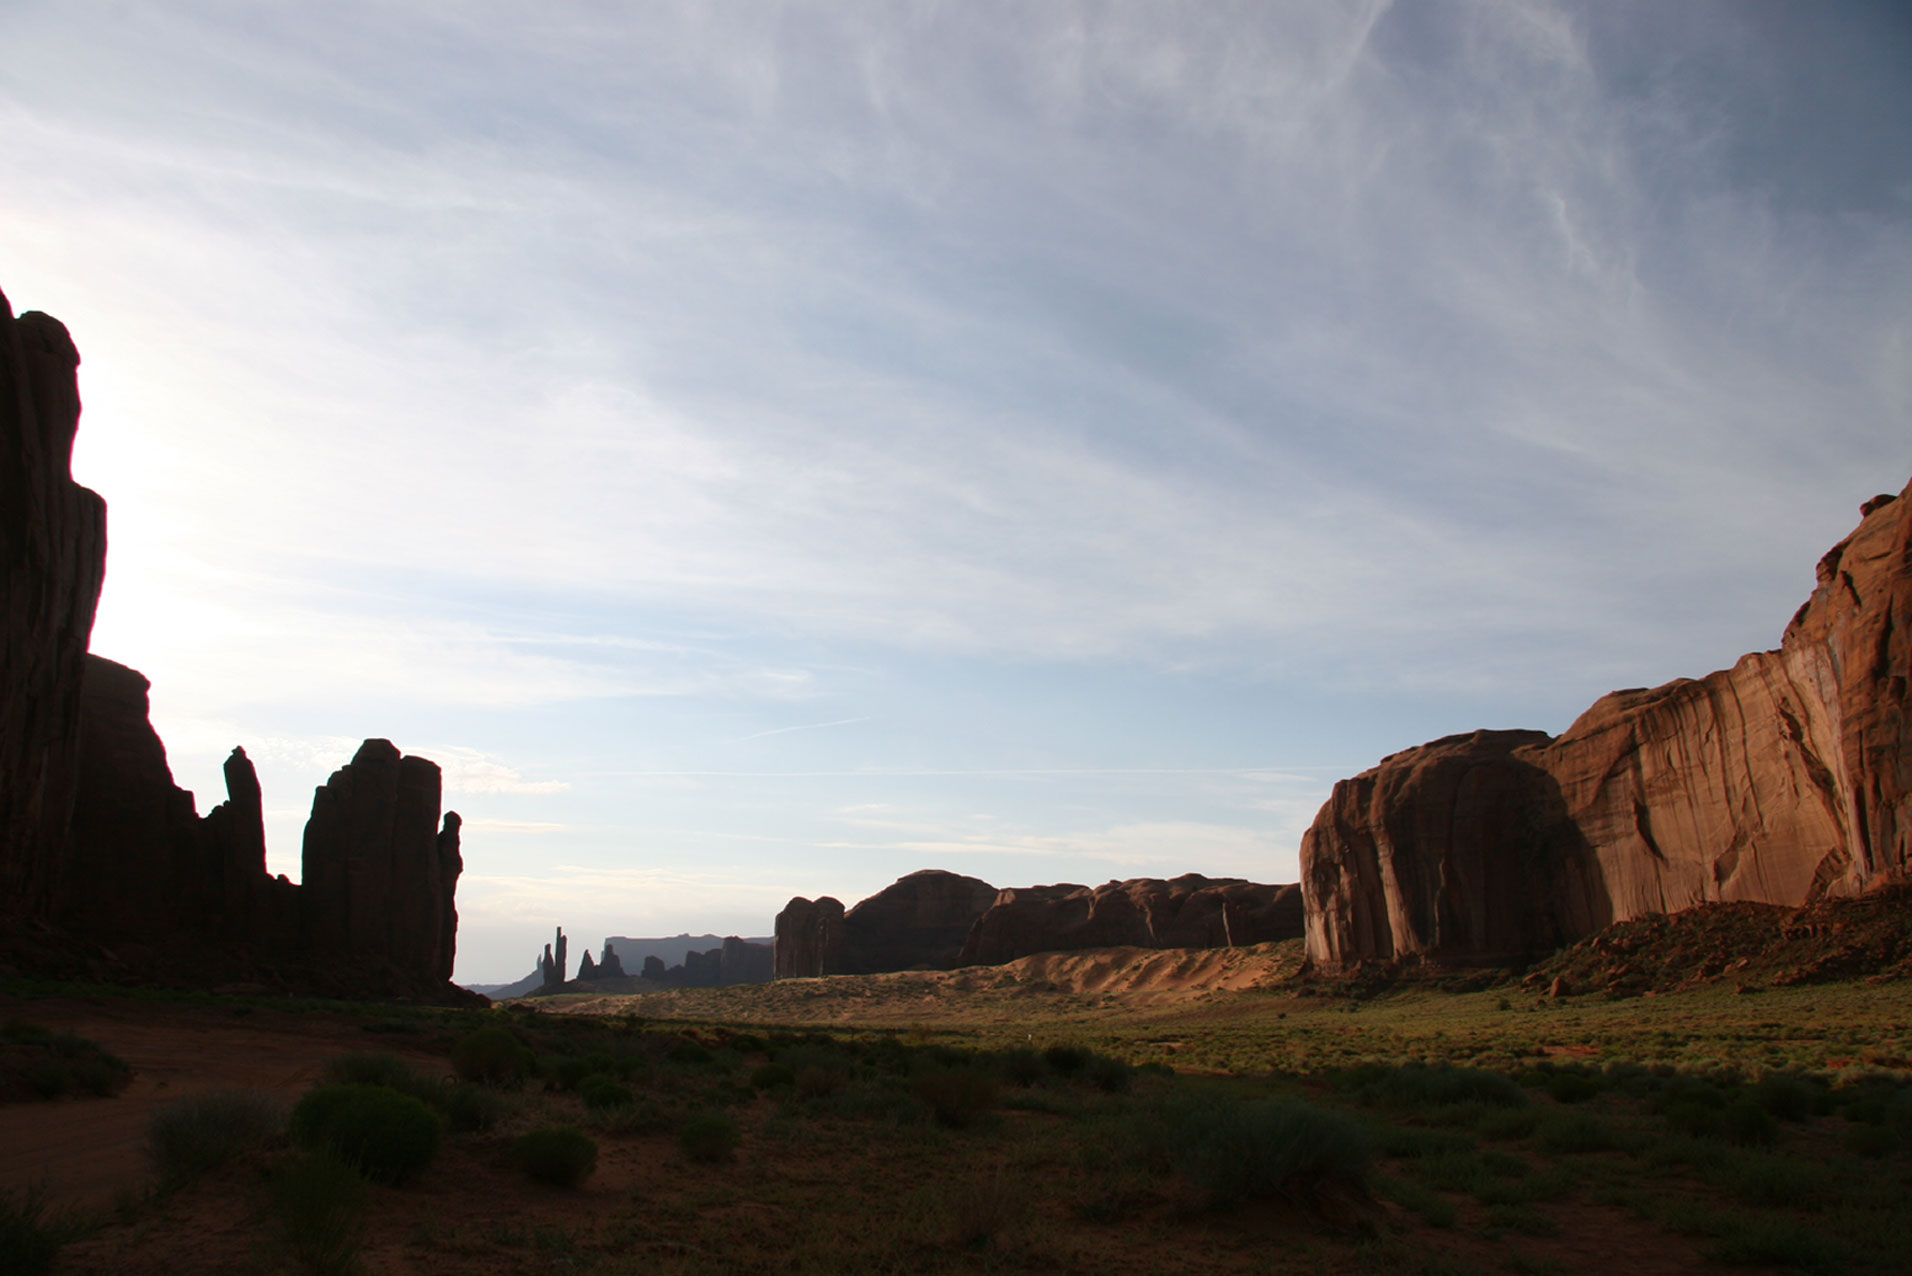 Fig.1 - Monument Valley